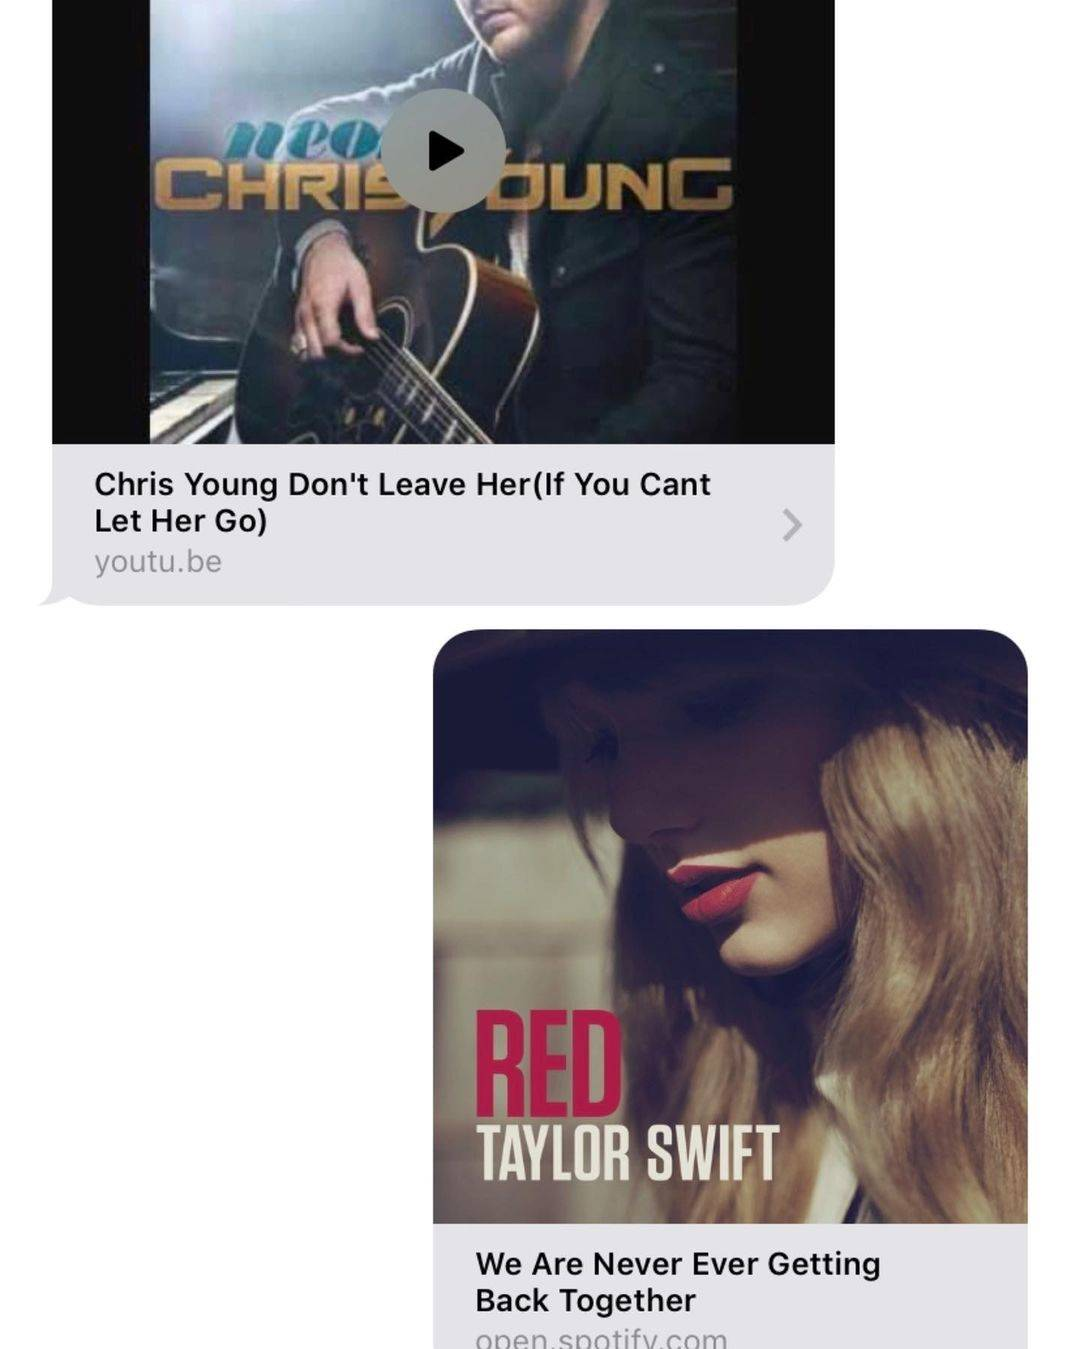 Text chat: Chris Young's Don't Leave Her song sent, response is Taylor Swift's We Are Never Ever Getting Back Together